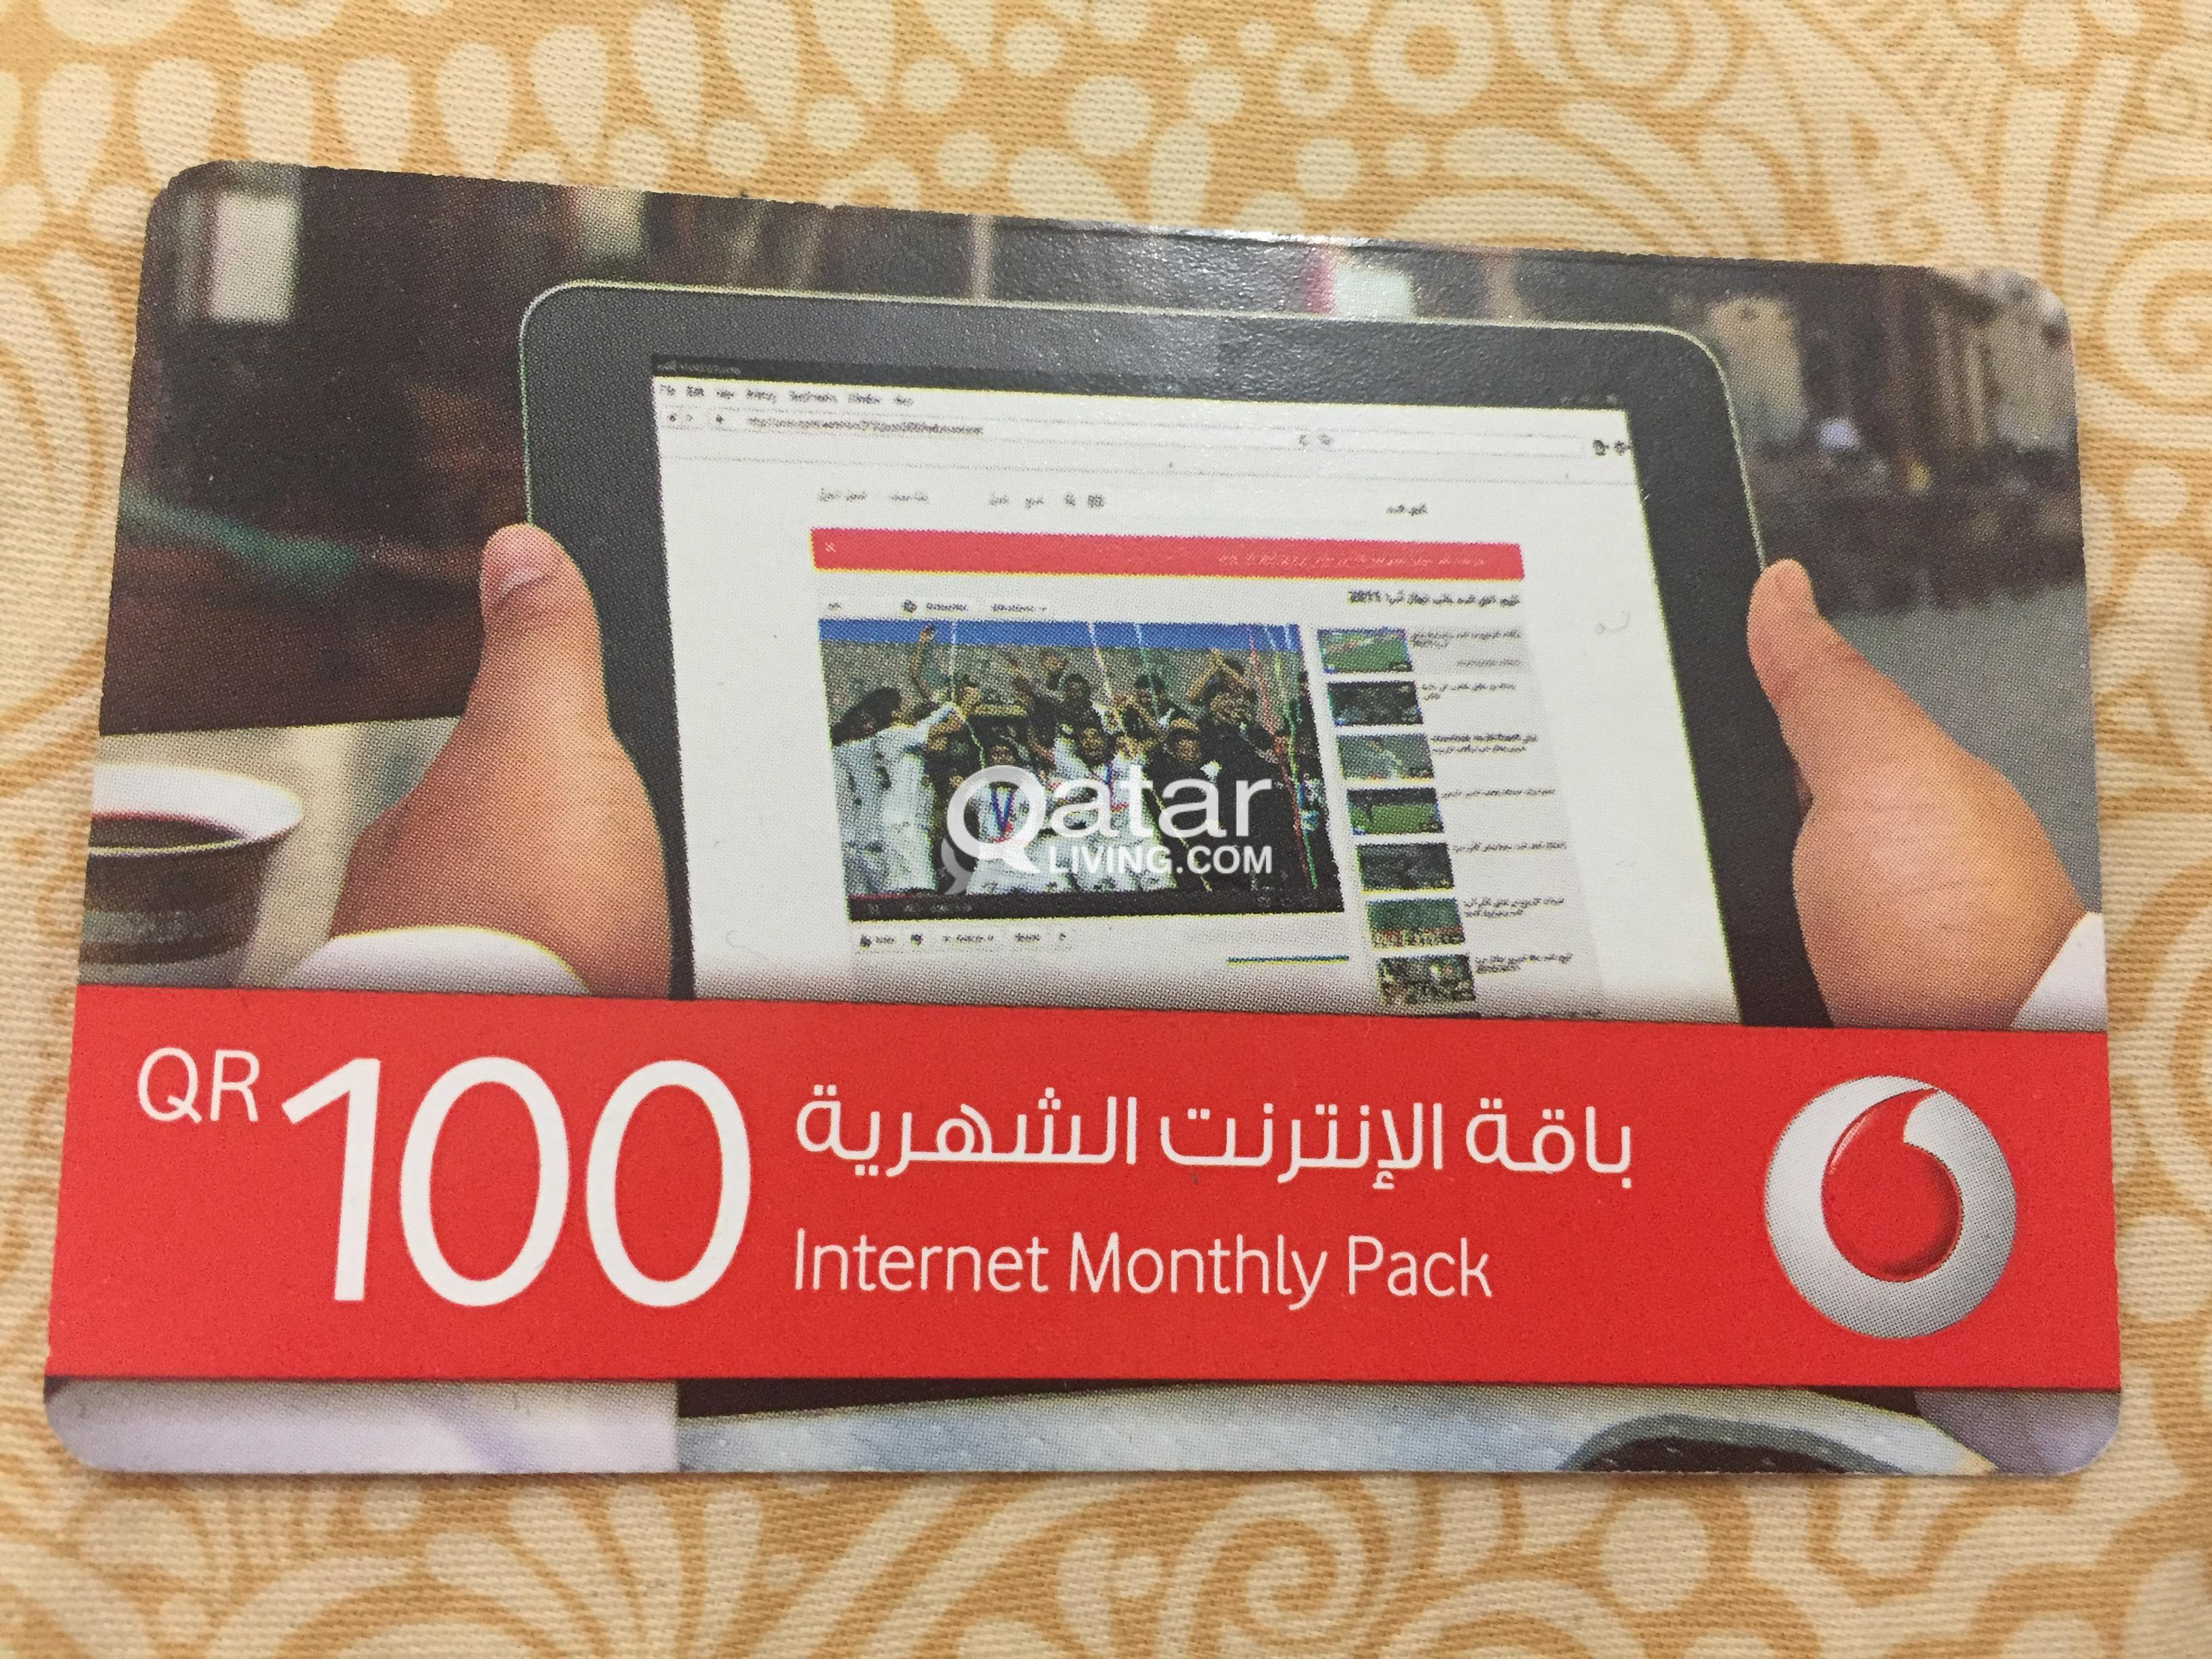 Vodafone Monthly Internet Pack of QAR 100 selling for QAR 85